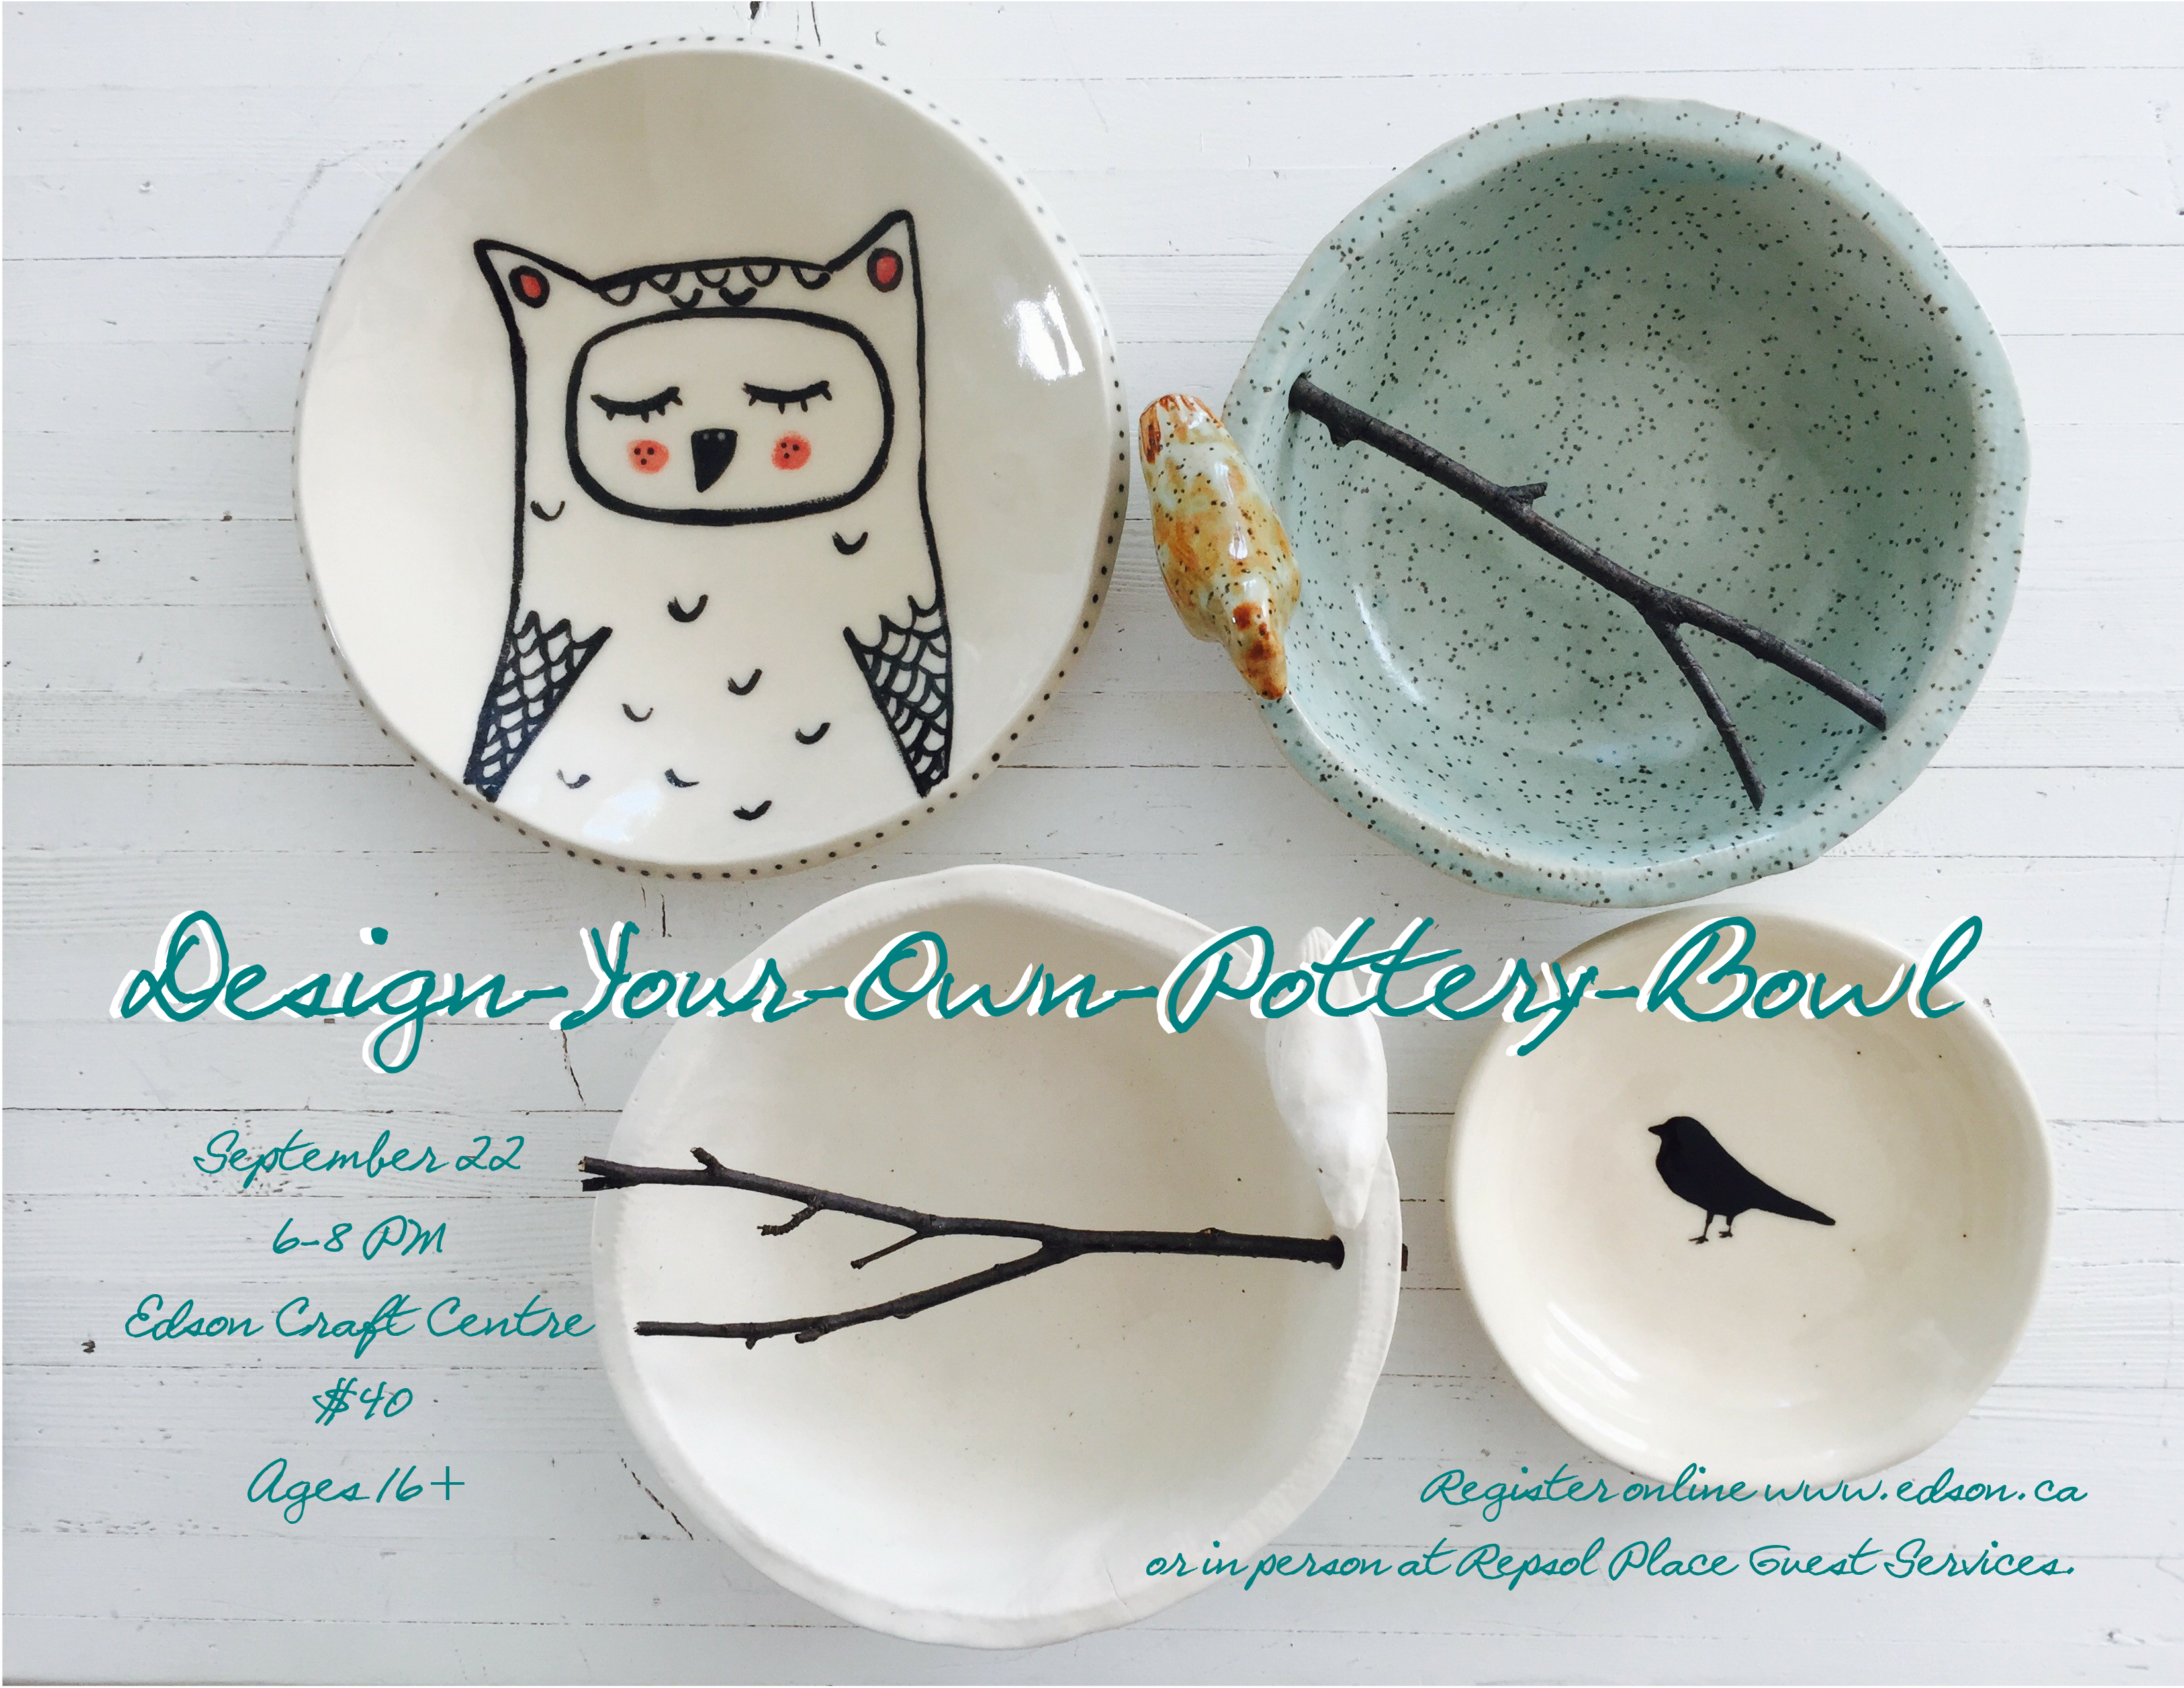 Poster design your own - Design Your Own Pottery Bowl Event Poster